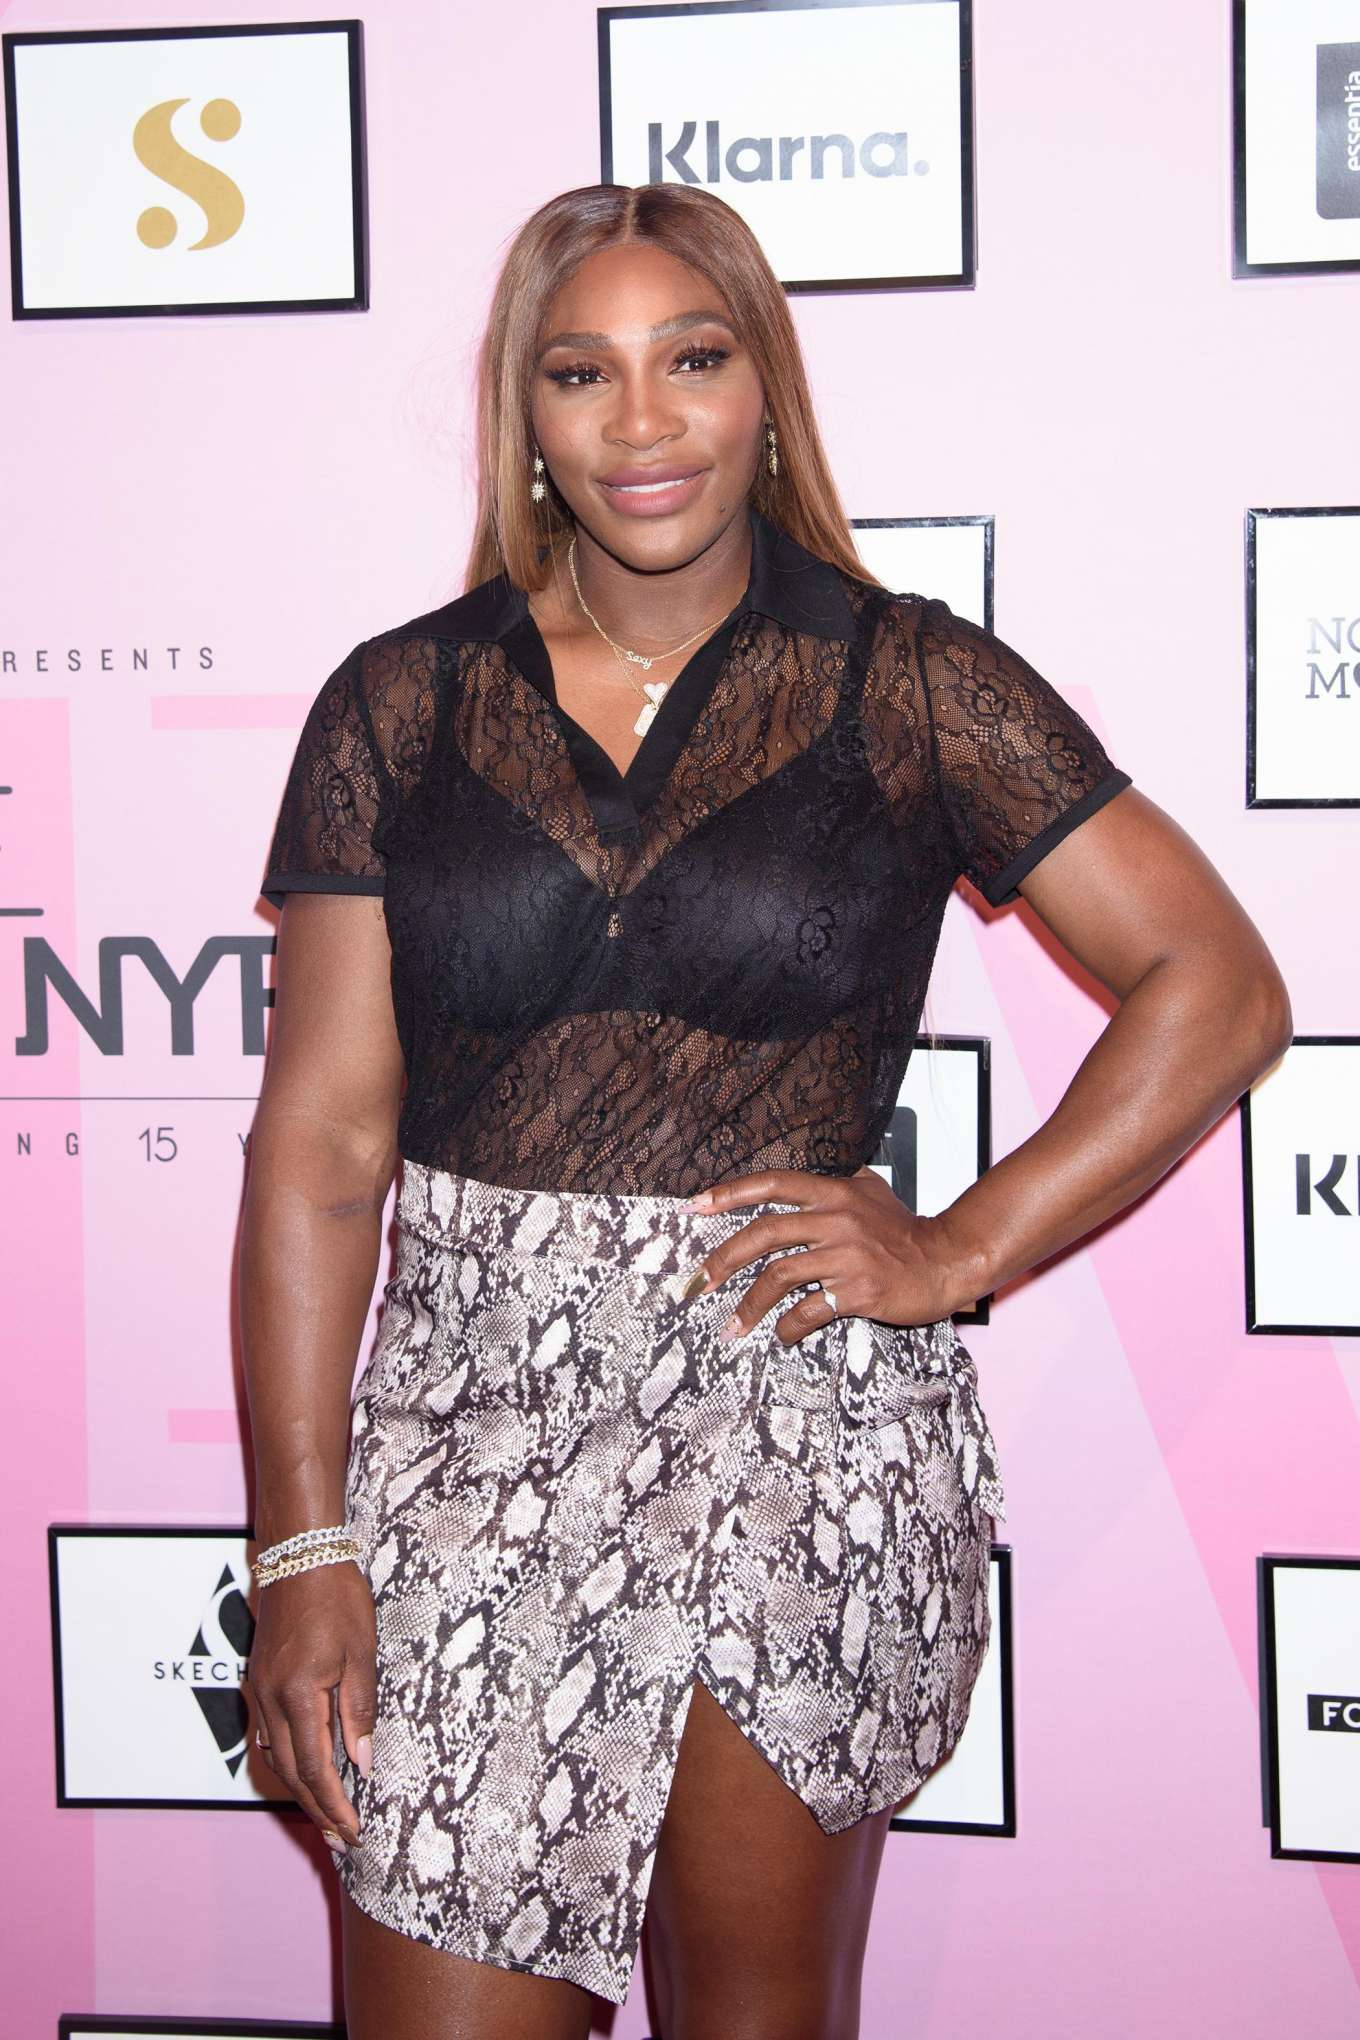 Serena Williams - S by Serena Fashion Show in New York City